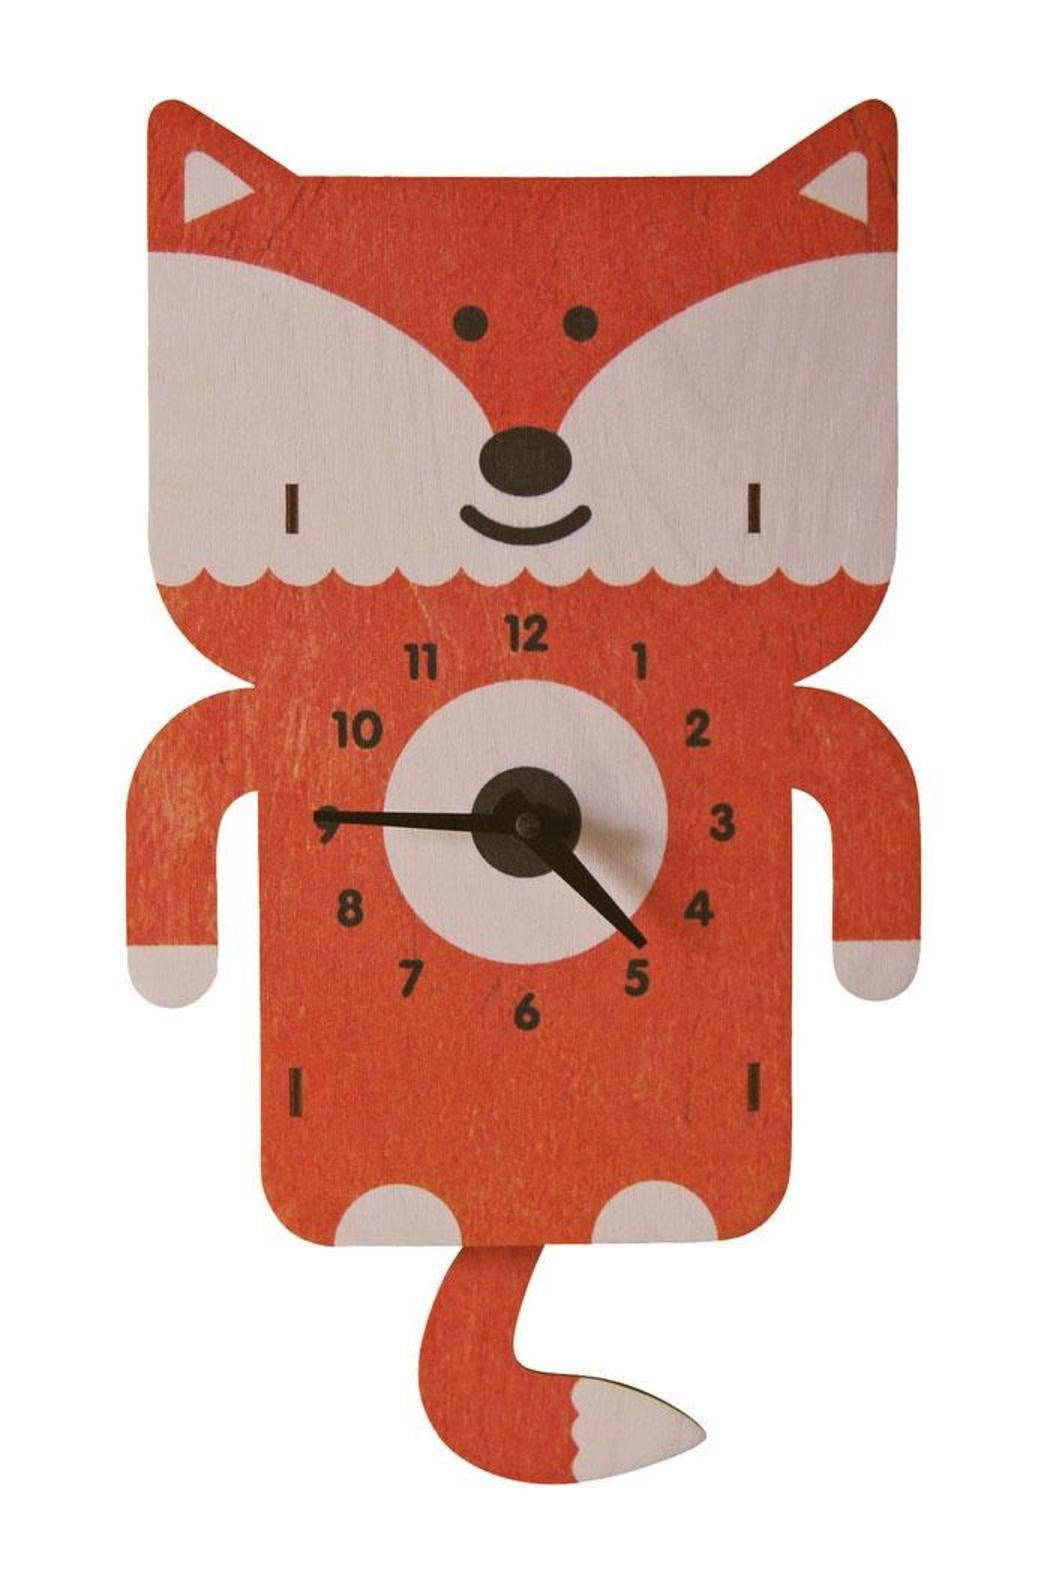 """Designed by Paul Ocepek, this whimsical clock has a 3D pop-out effect when hanging on the wall and each piece is unique, Made in MA from 1/8"""" thick laser cut birch plywood and printed with non-toxic water based inks. A pre-drilled hole in the back makes for easy hanging. USA quartz pendulum movement requires one AA Battery (not included).    Measures approximately 11 1/2"""" H x 8""""W x 1""""D   Fox Pendulum Clock by Modern Moose. Home & Gifts - Home Decor - Decorative Objects Massachusetts"""